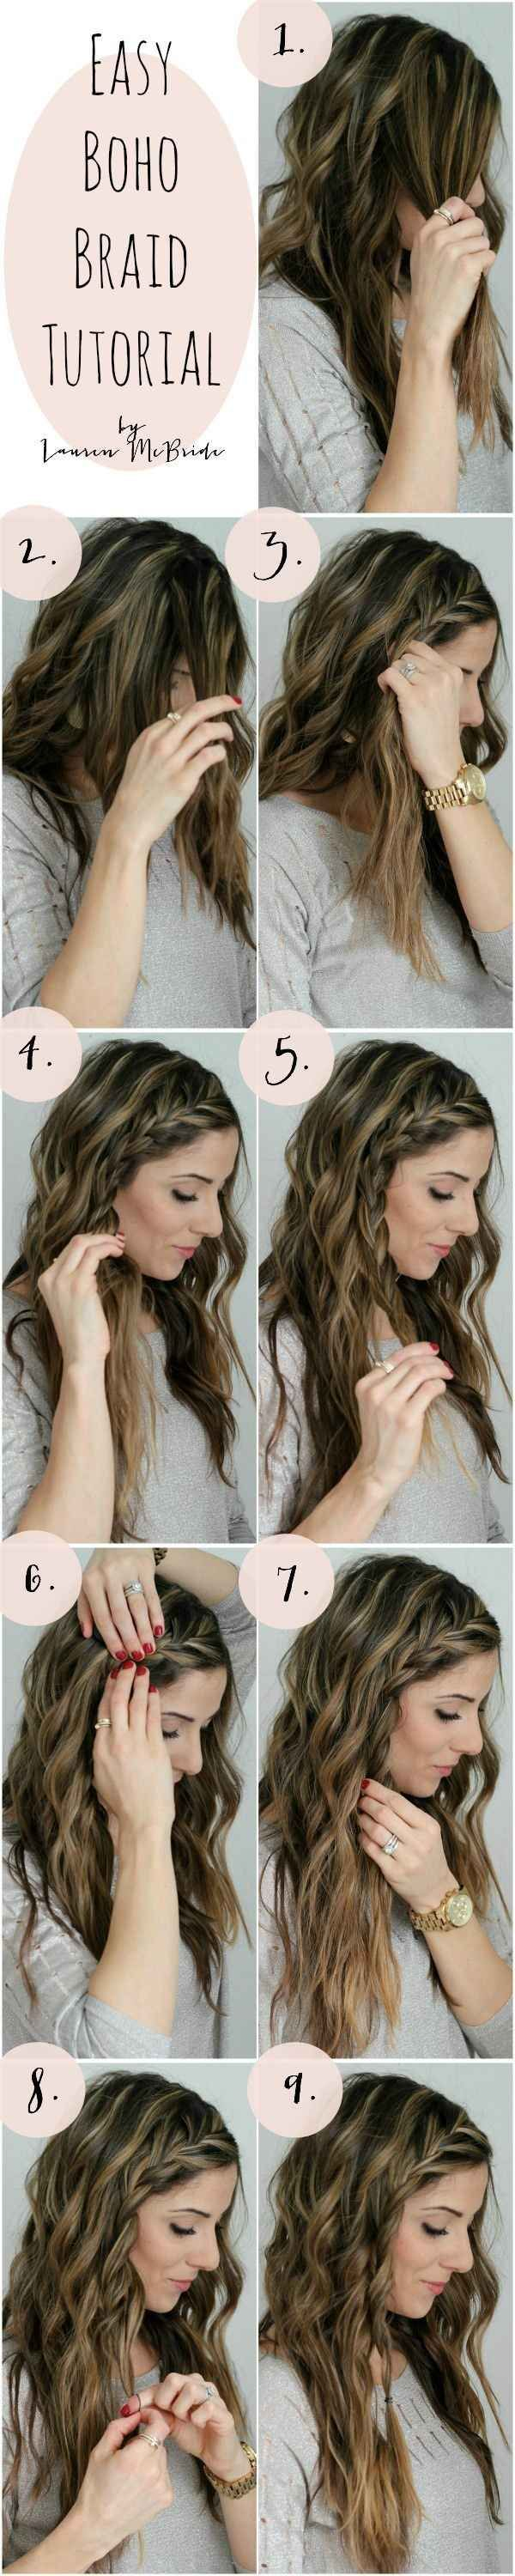 best cool hairstyles images on pinterest cute hairstyles